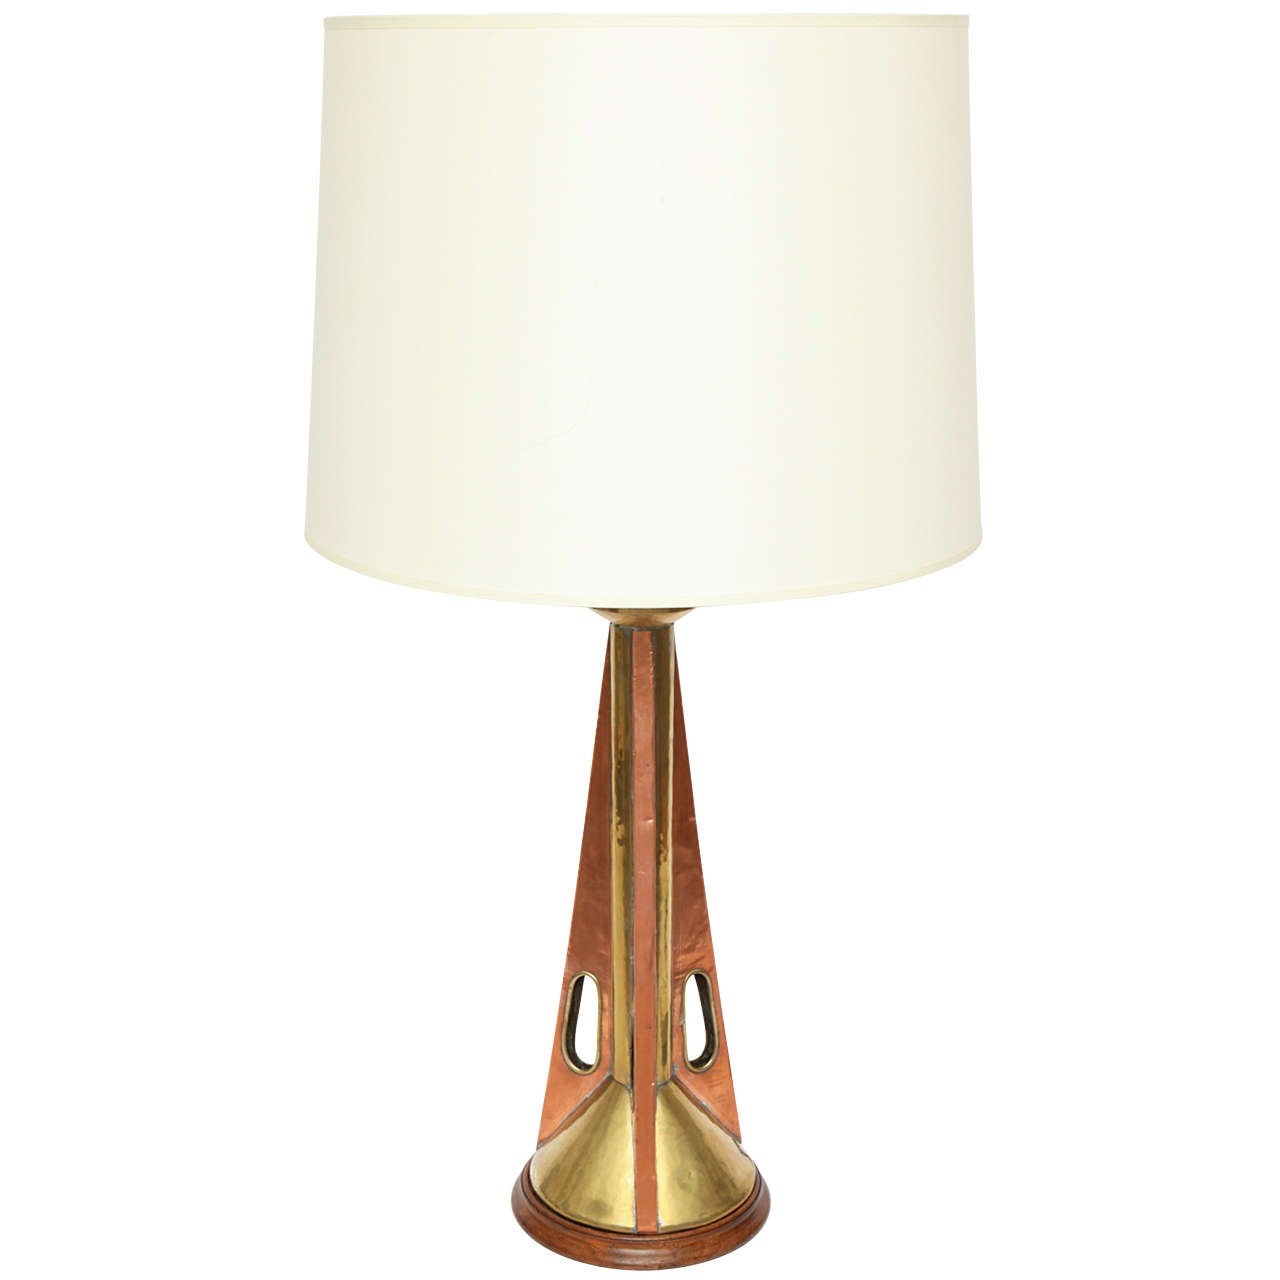 1960s Modernist Brass and Wood Table Lamp For Sale at 1stdibs